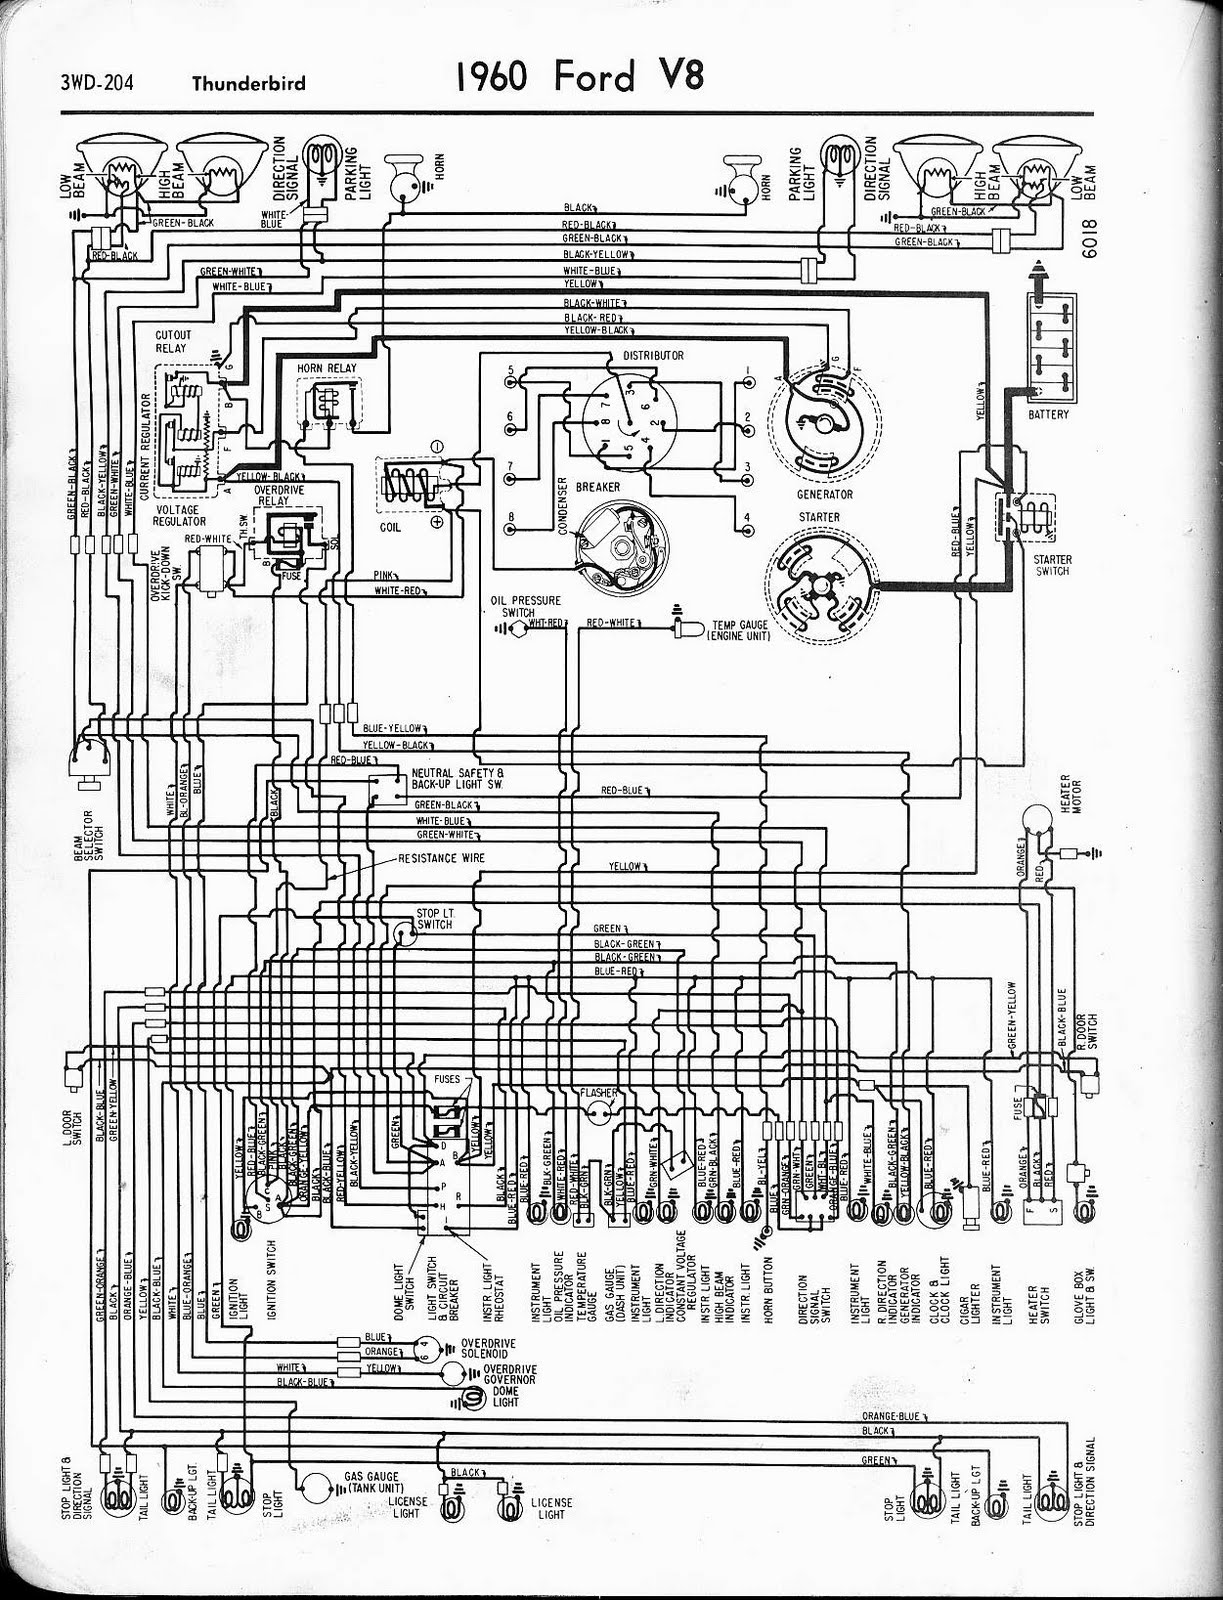 Ford Thunderbird V on 1956 ford fairlane wiring diagram